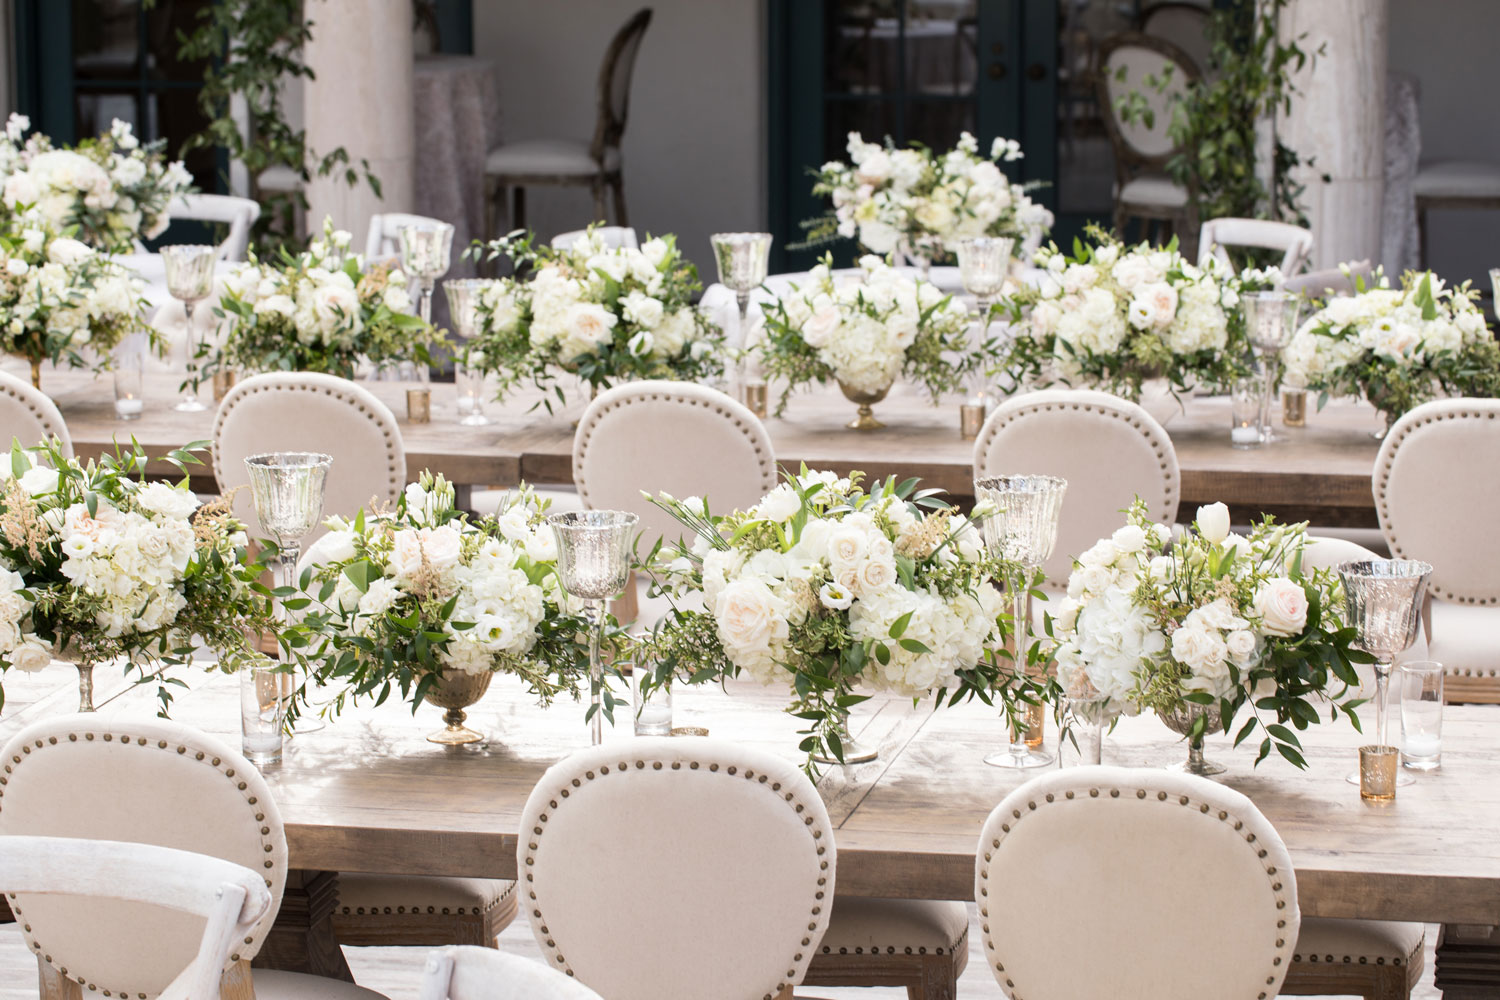 long rustic chic king's table at wedding with low white centerpieces